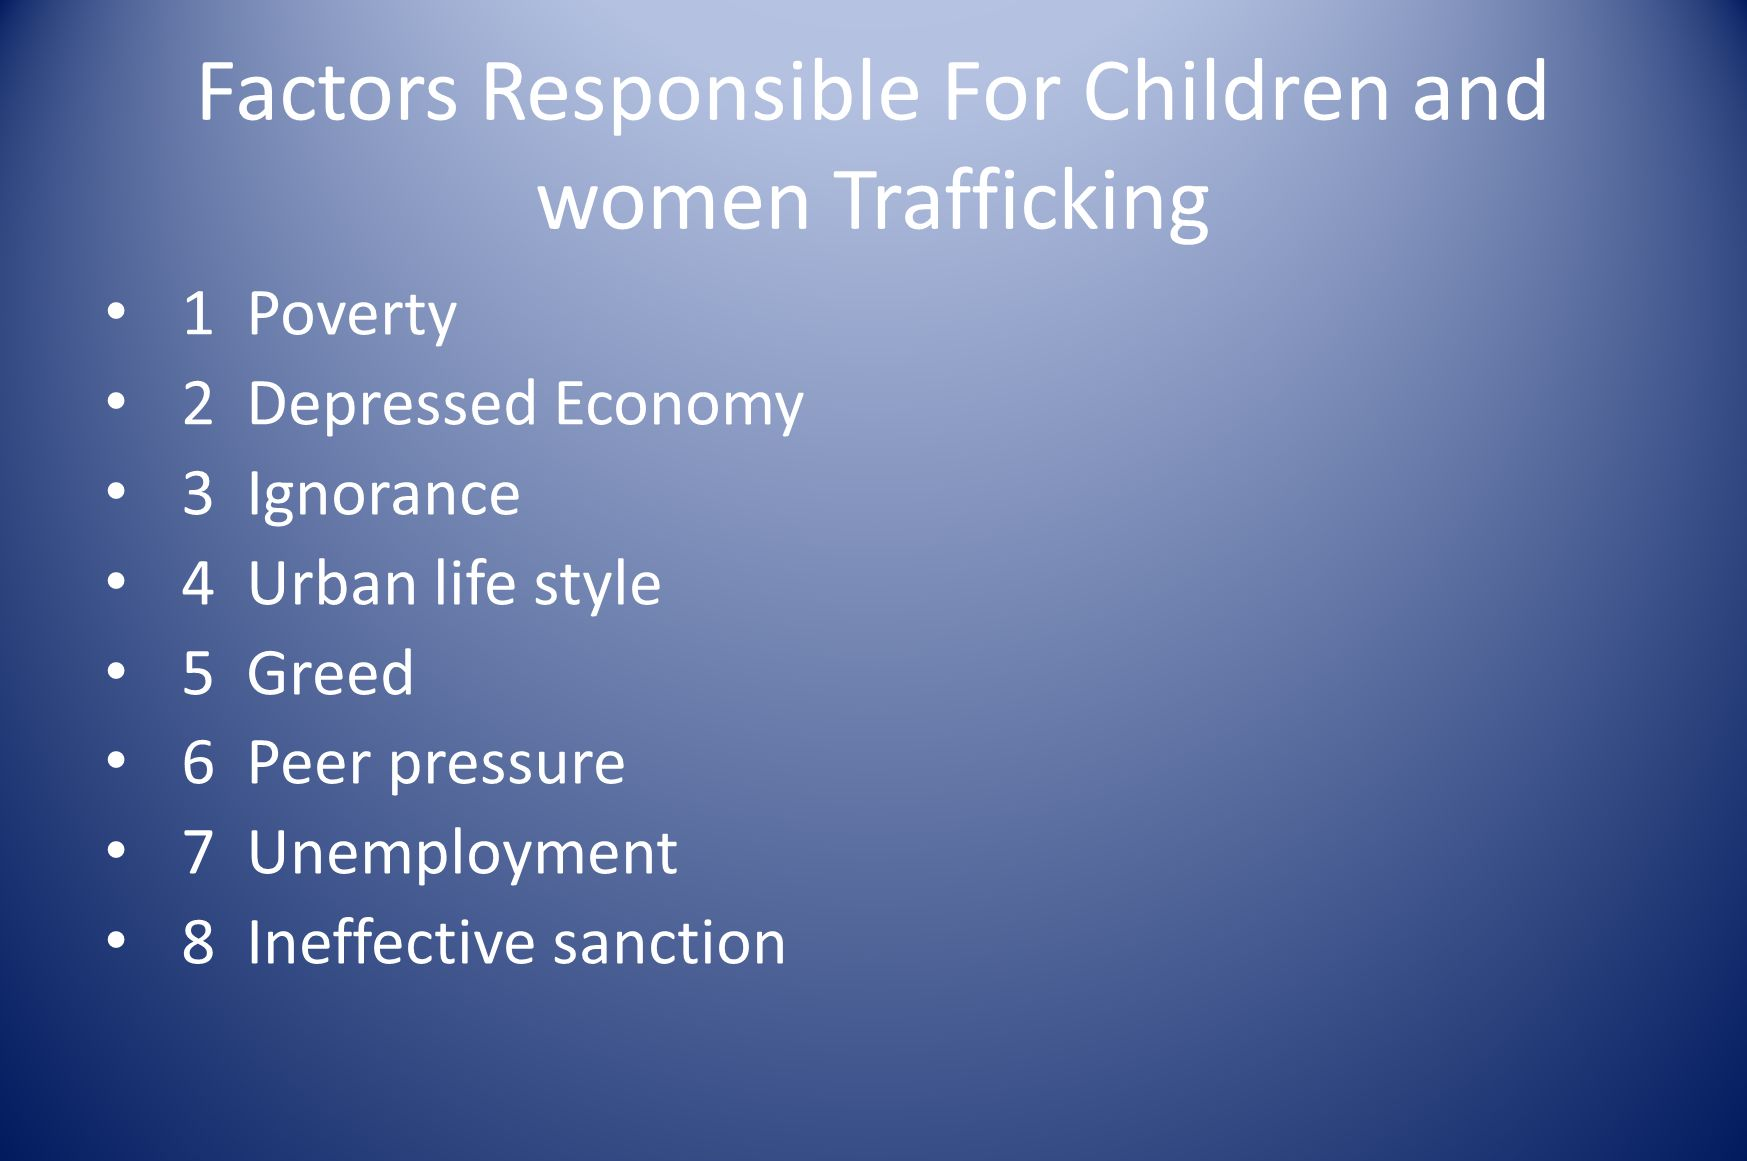 Factors Responsible For Children and women Trafficking